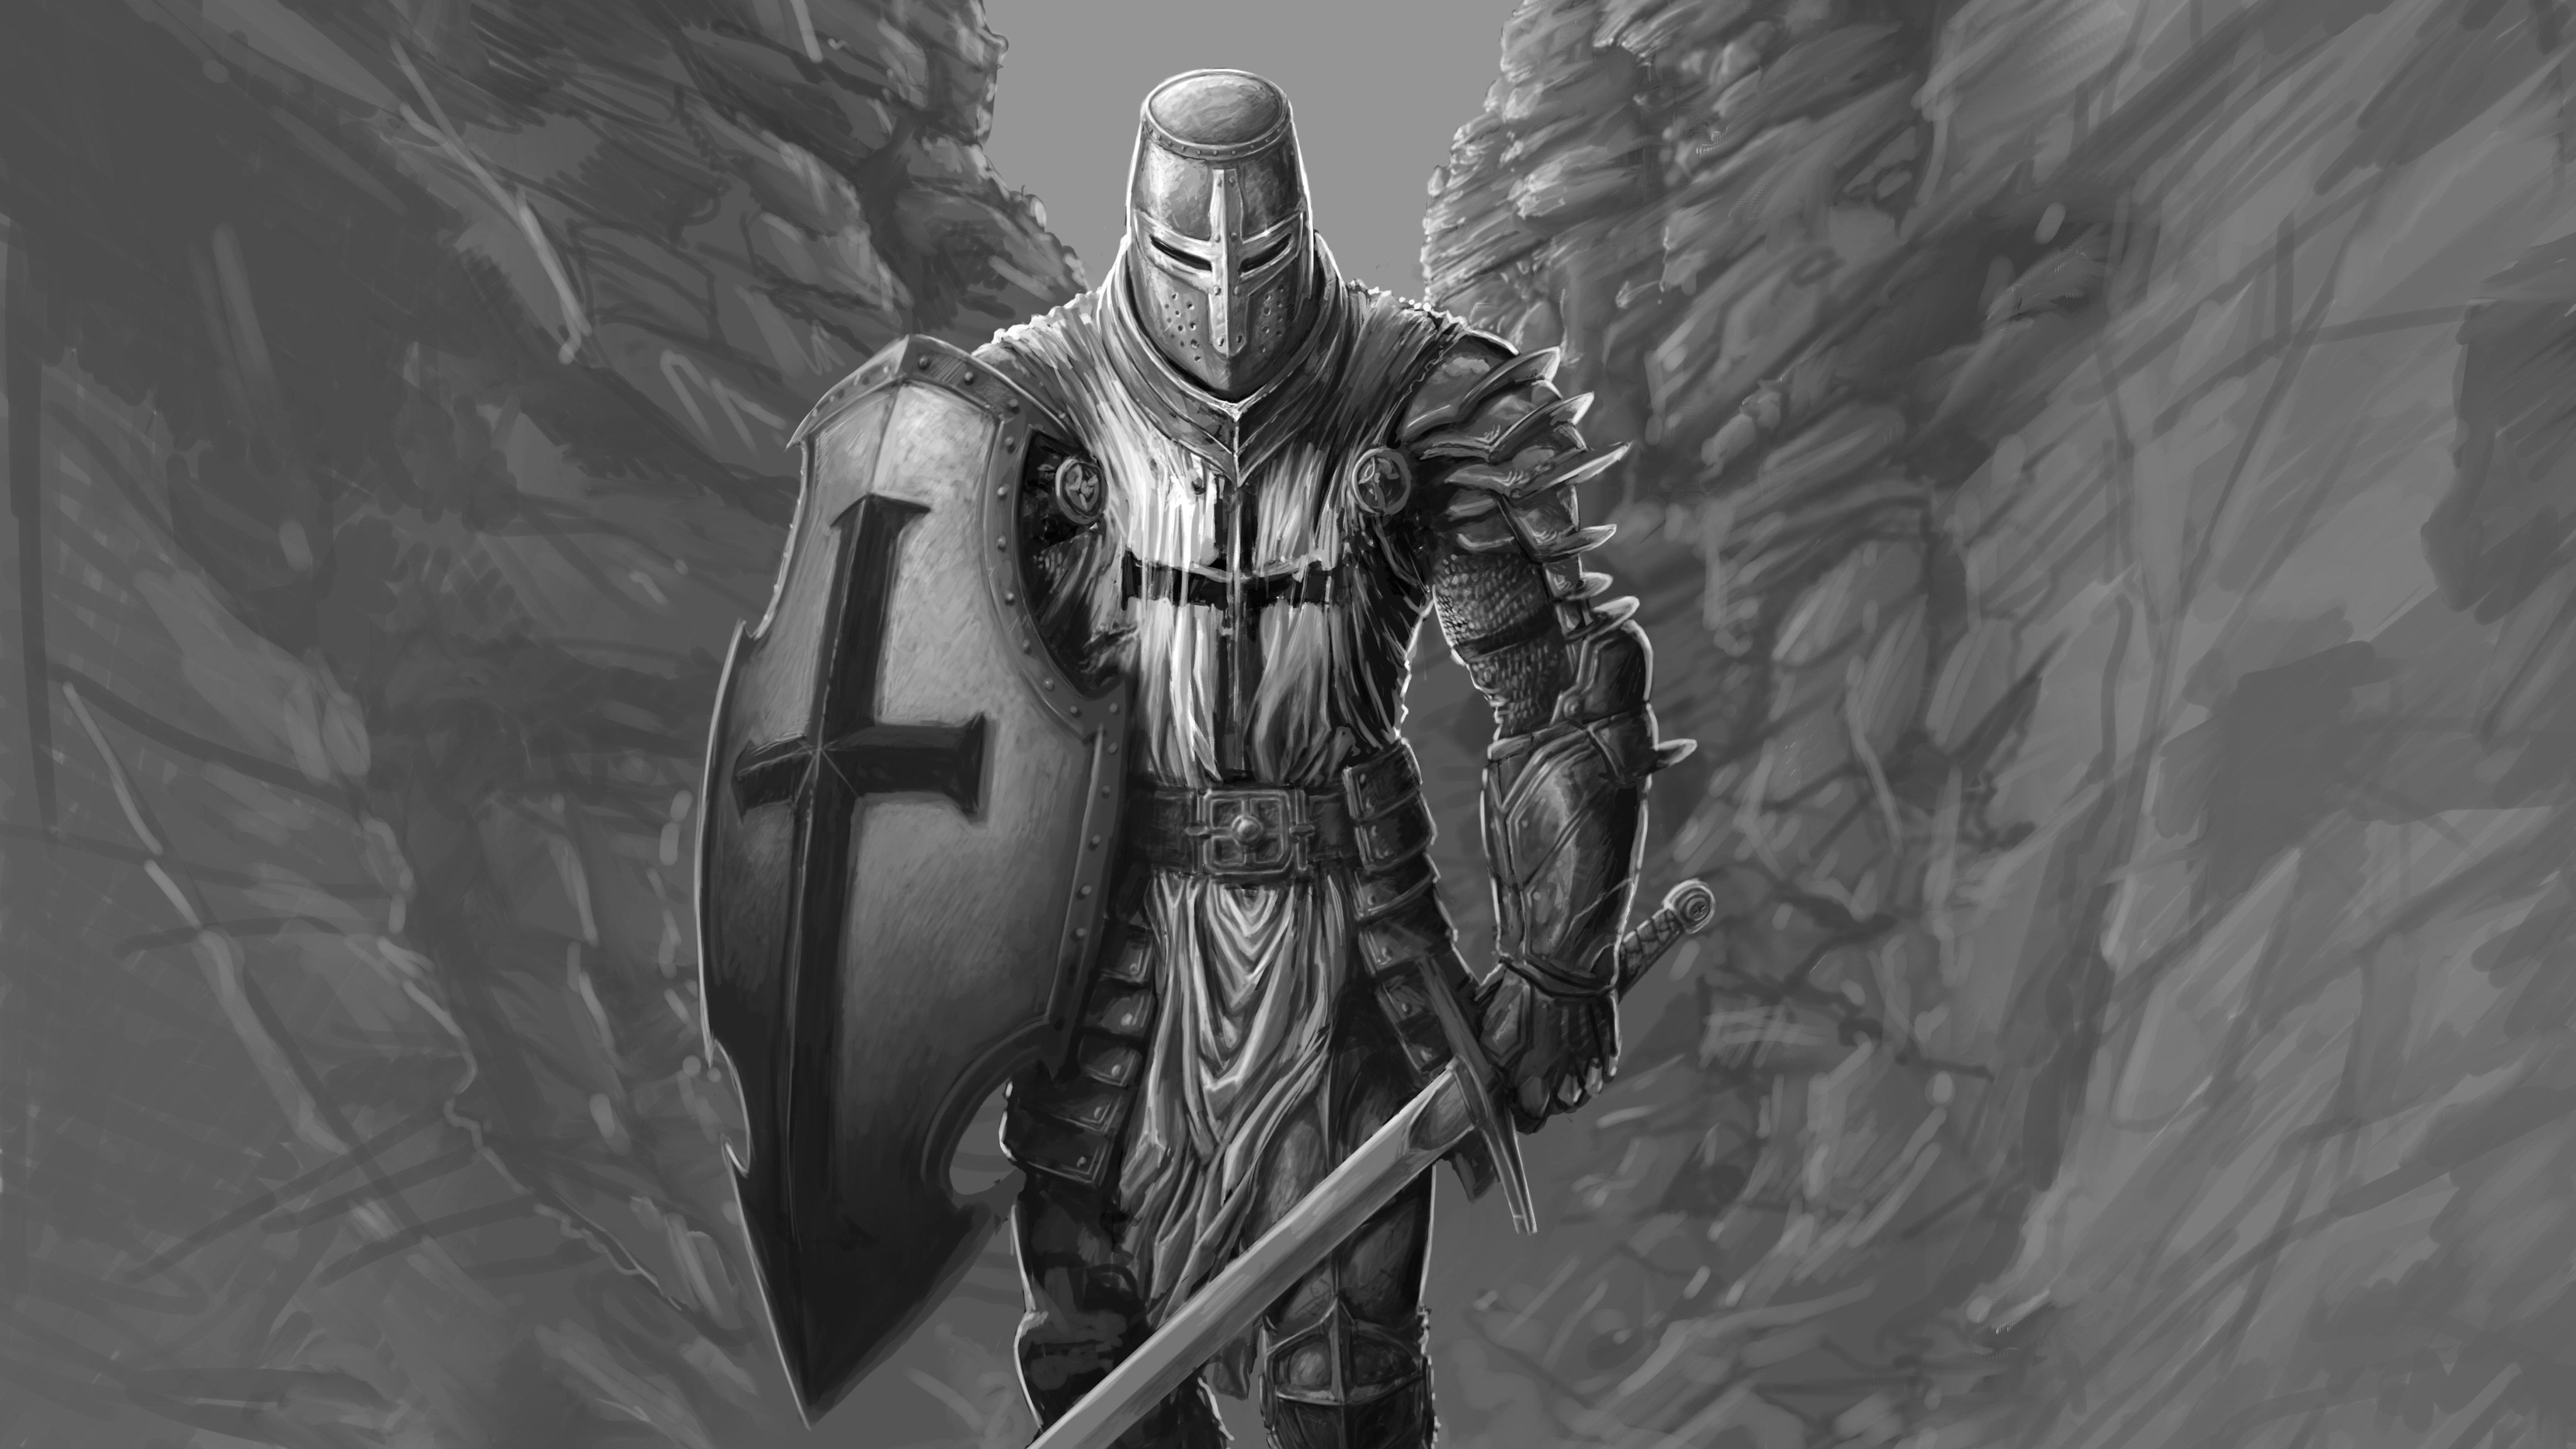 The Knight Hd Artist 4k Wallpapers Images Backgrounds Photos And Pictures